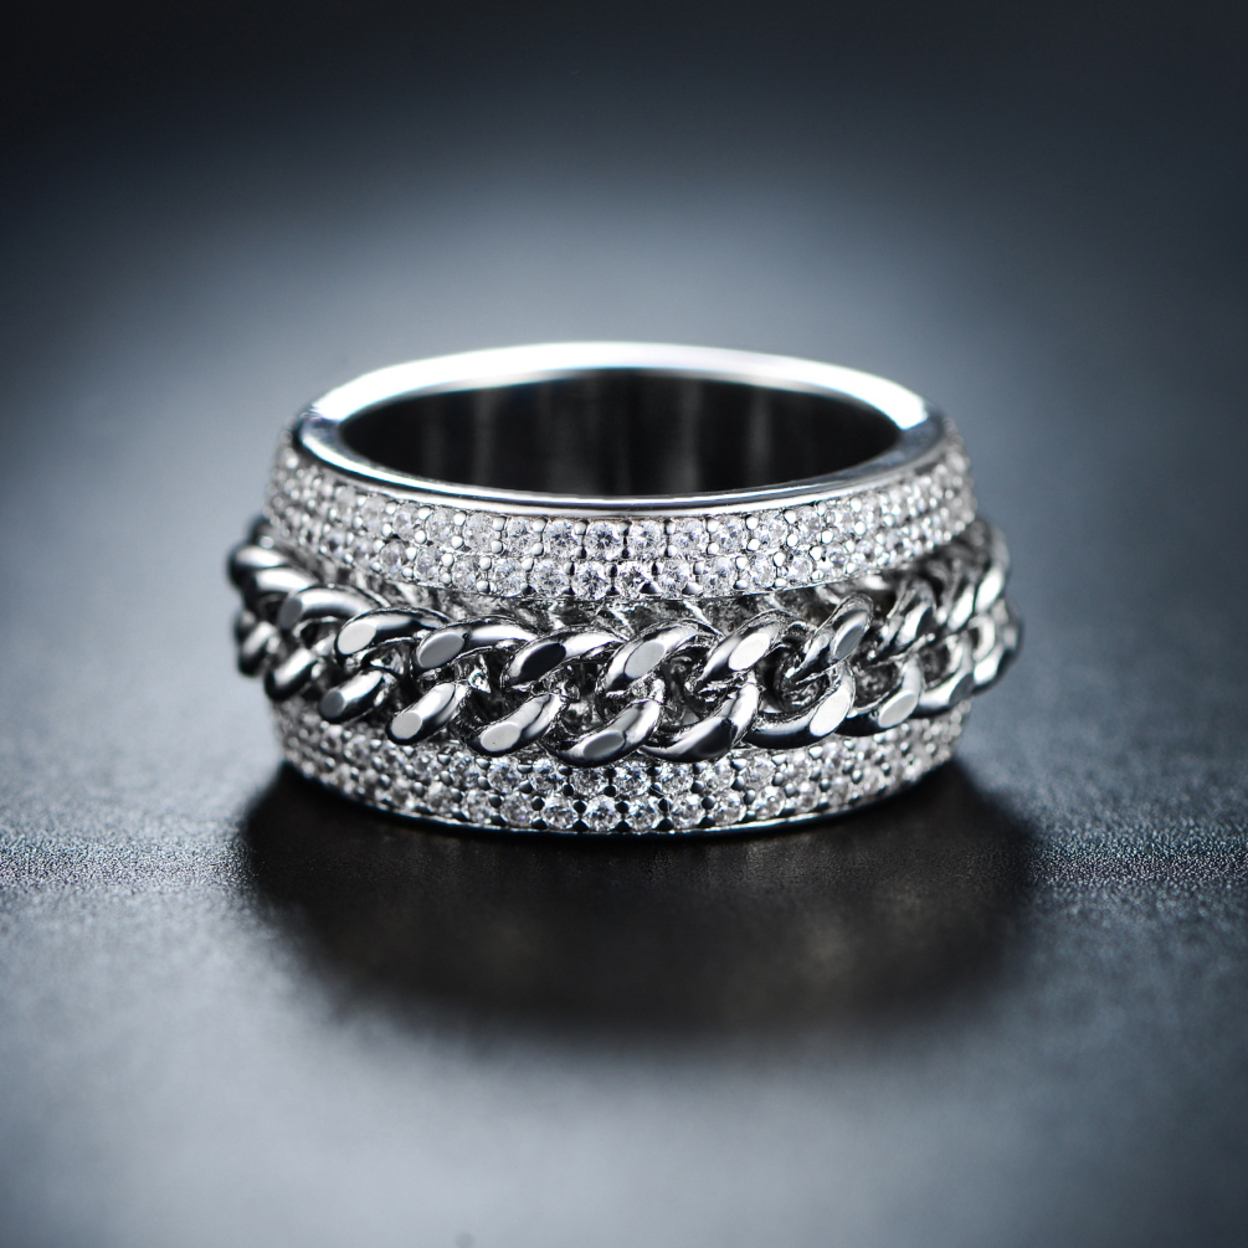 18K White Gold Plated Silver And Swarovski Elements Link Ring - 5